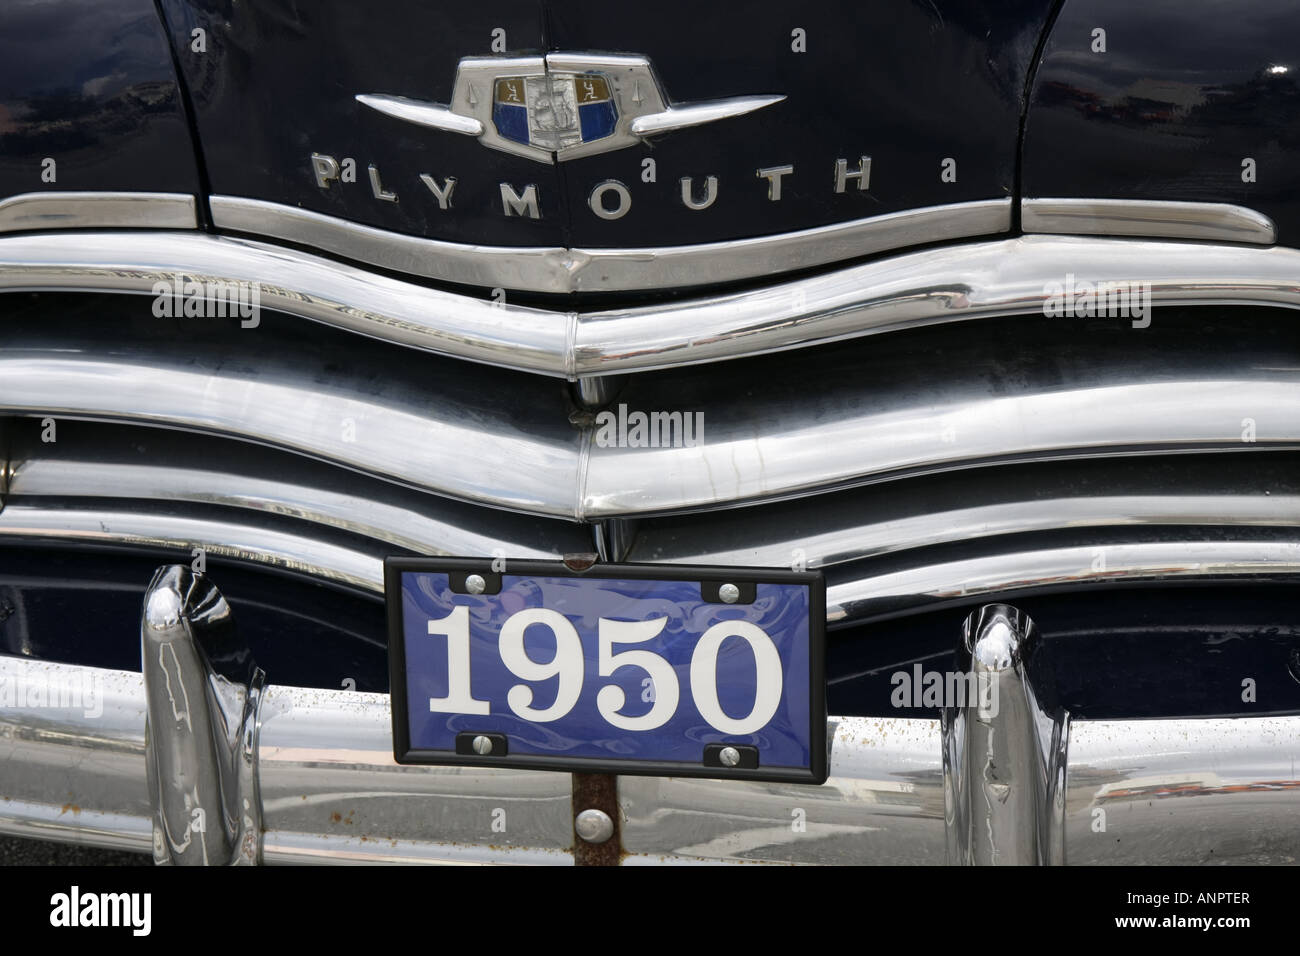 1950 Plymouth Classic Car Stock Photos To 1955 Cars Miami Florida Antique Automobile Chrome Front Grill Bumper Image